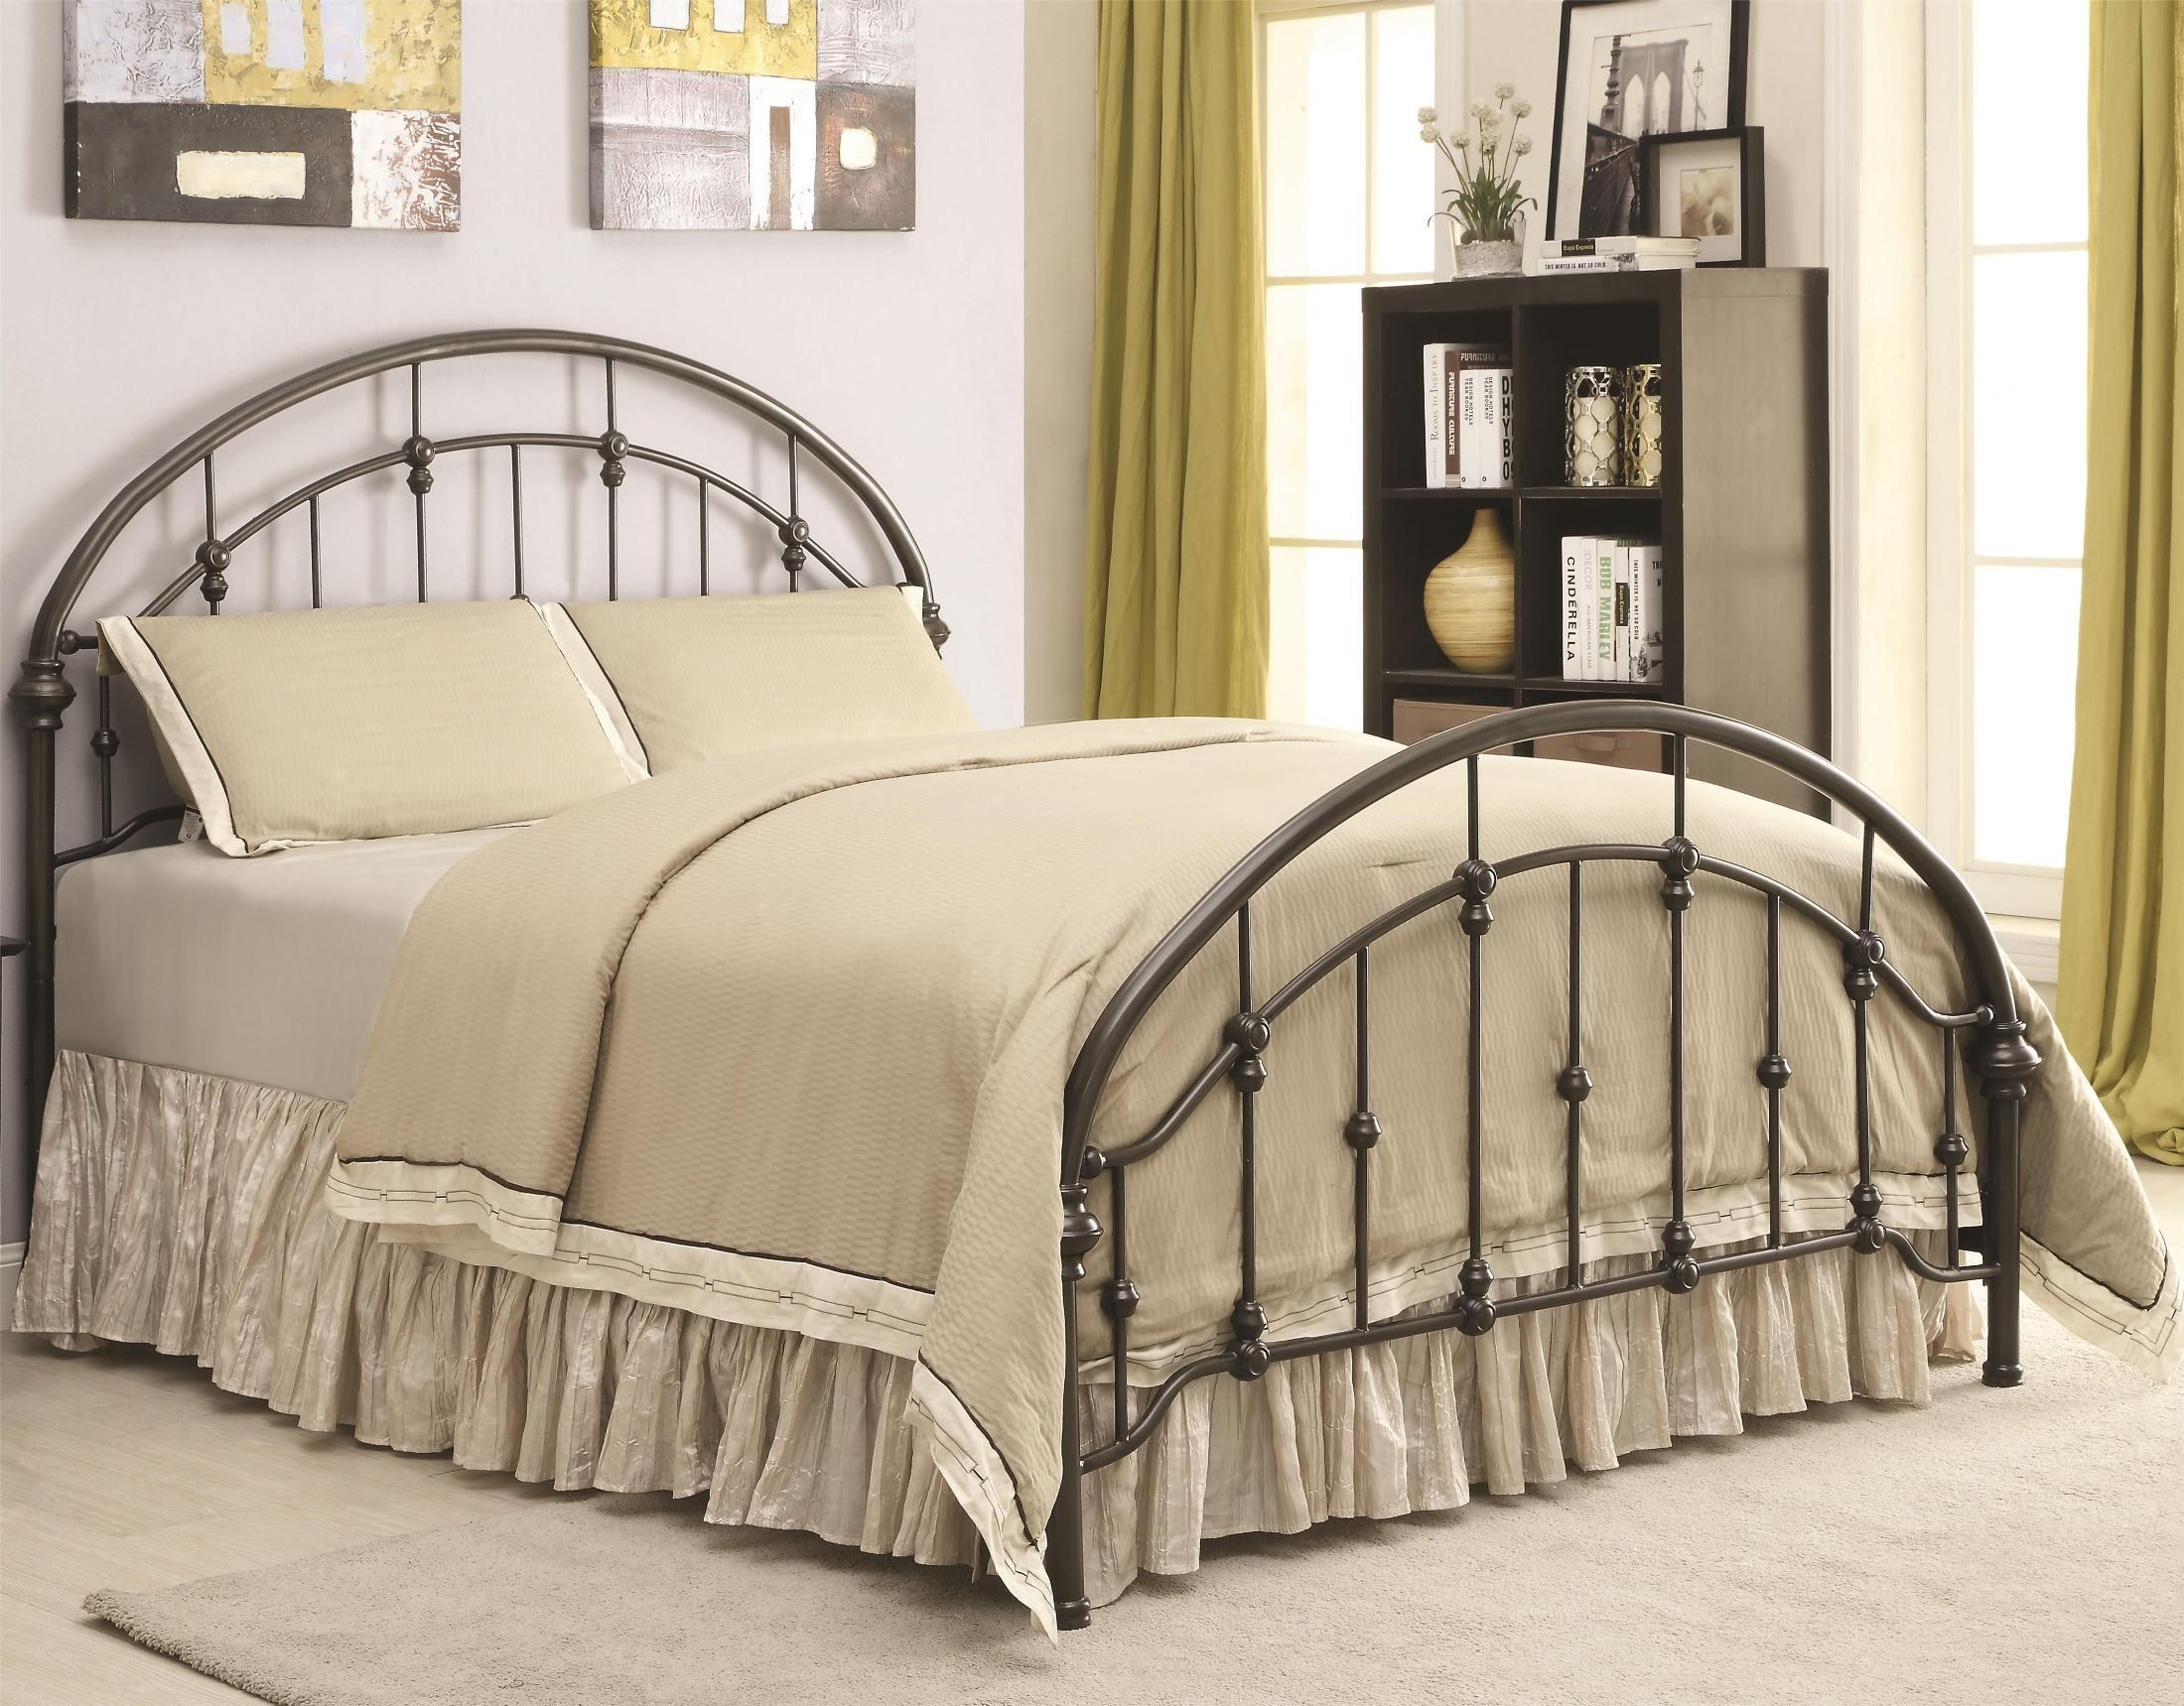 This metal bed has a dark bronzecolored curved headboard